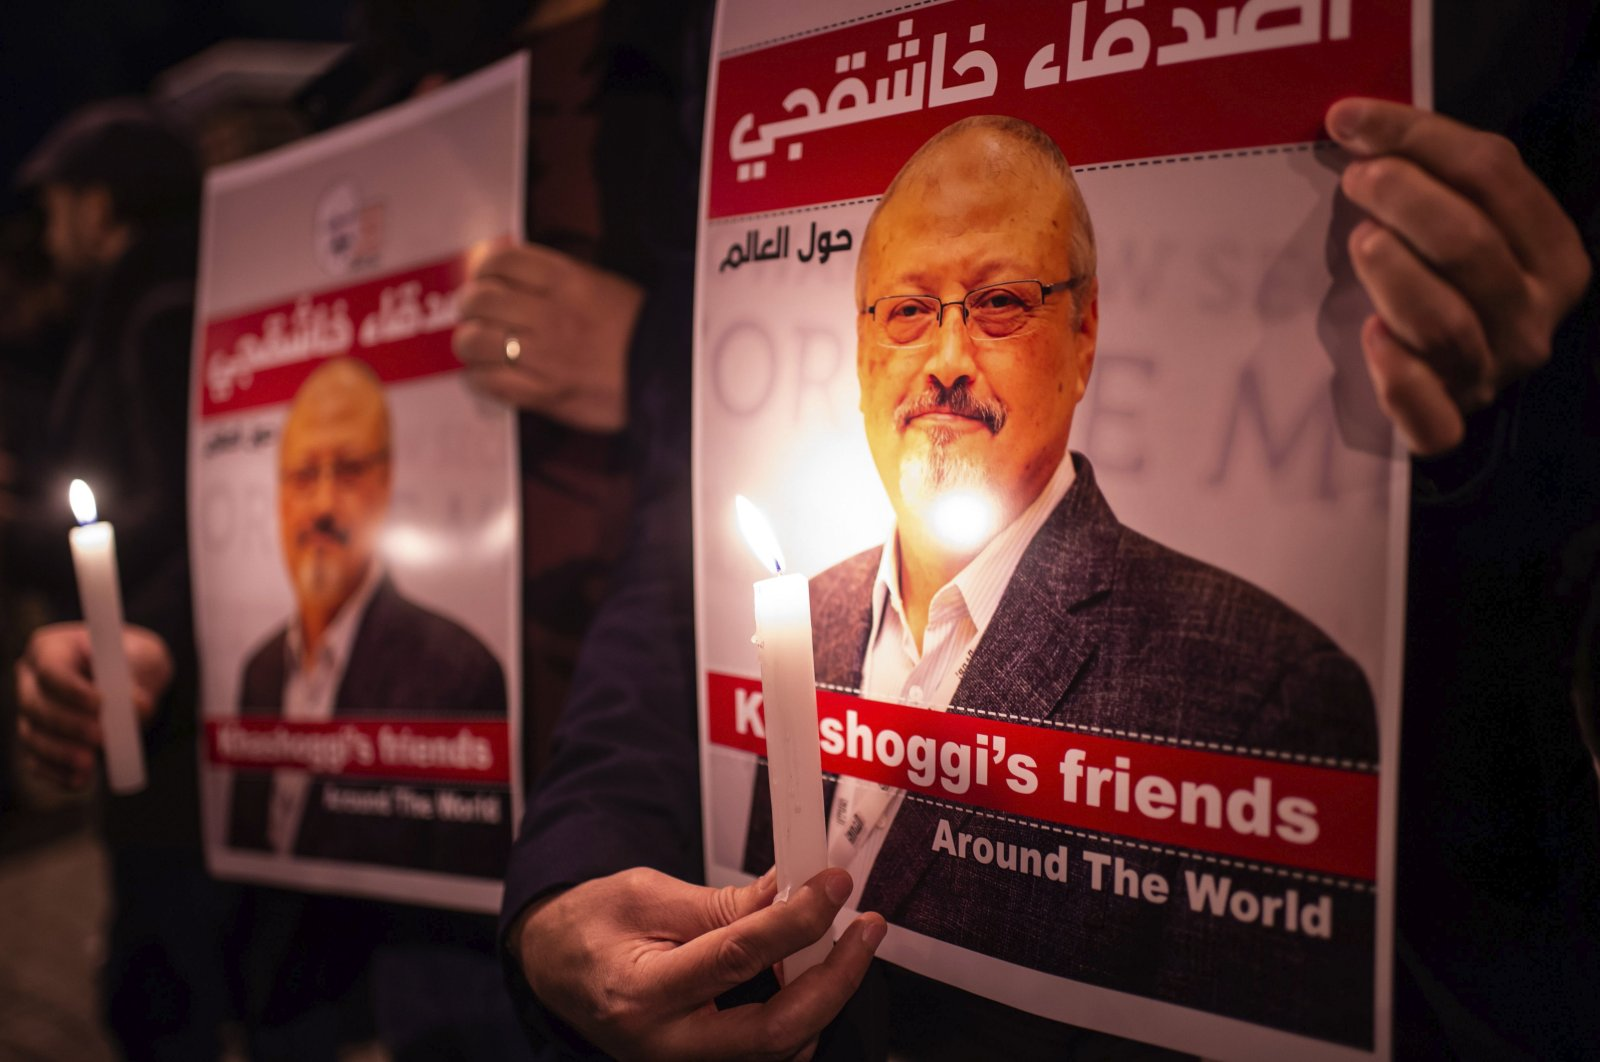 People hold posters featuring Saudi journalist Jamal Khashoggi during a gathering outside Saudi Arabia's consulate in Istanbul, Turkey, Oct. 25, 2018. (AFP Photo)